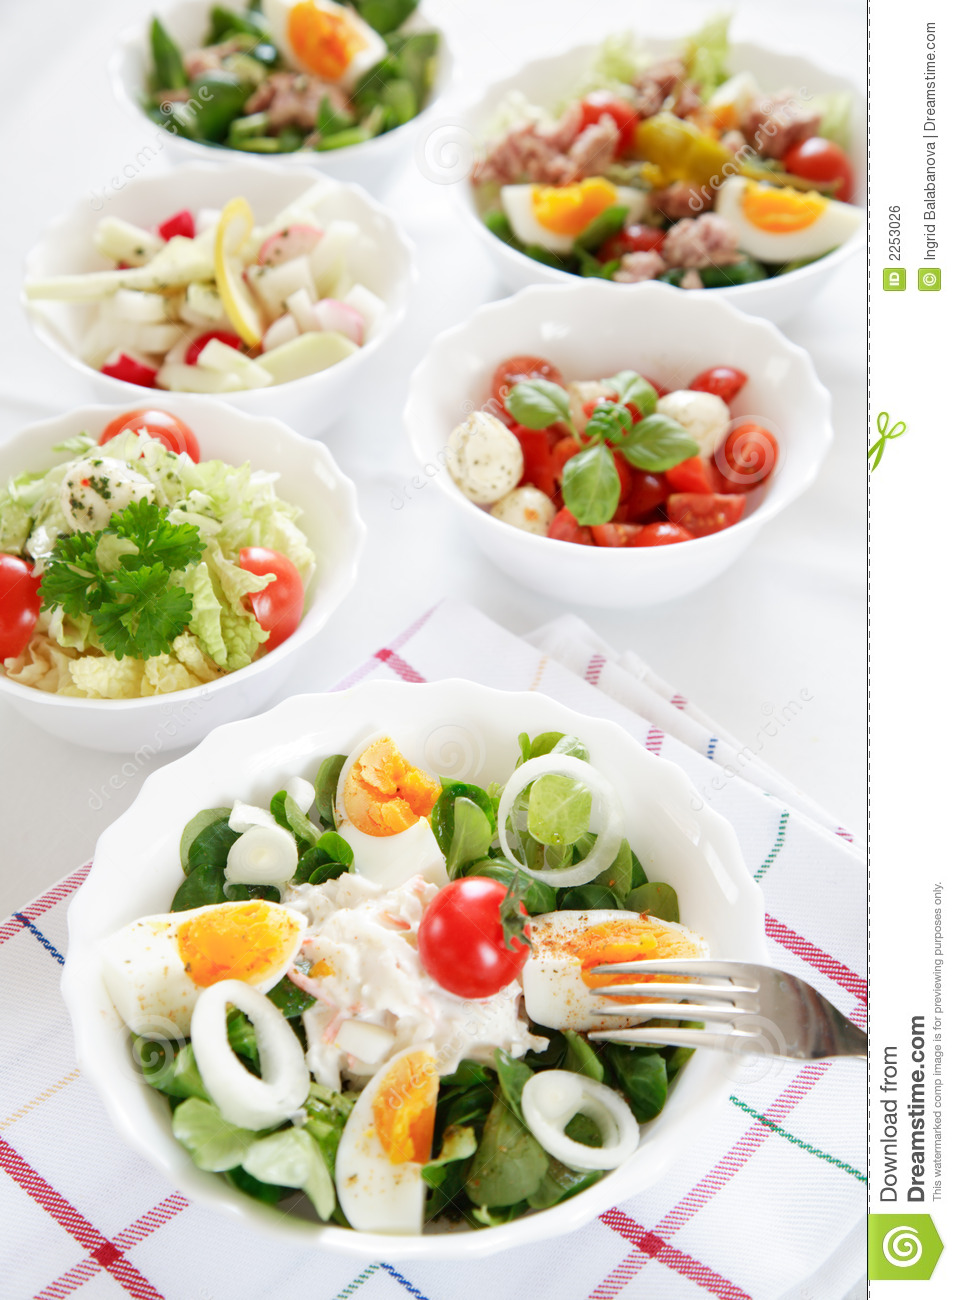 Salad buffet royalty free stock image image 2253026 - Presentation buffet froid deco ...